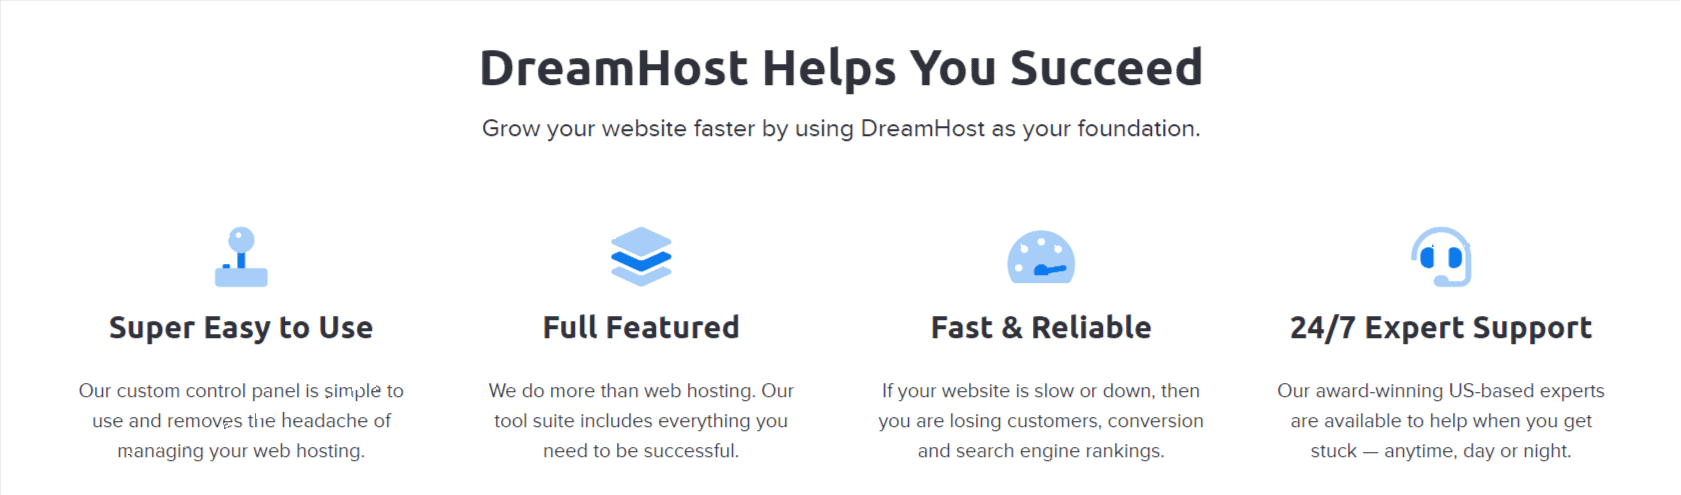 DreamHost helps you Sucees- Dreamhost Review